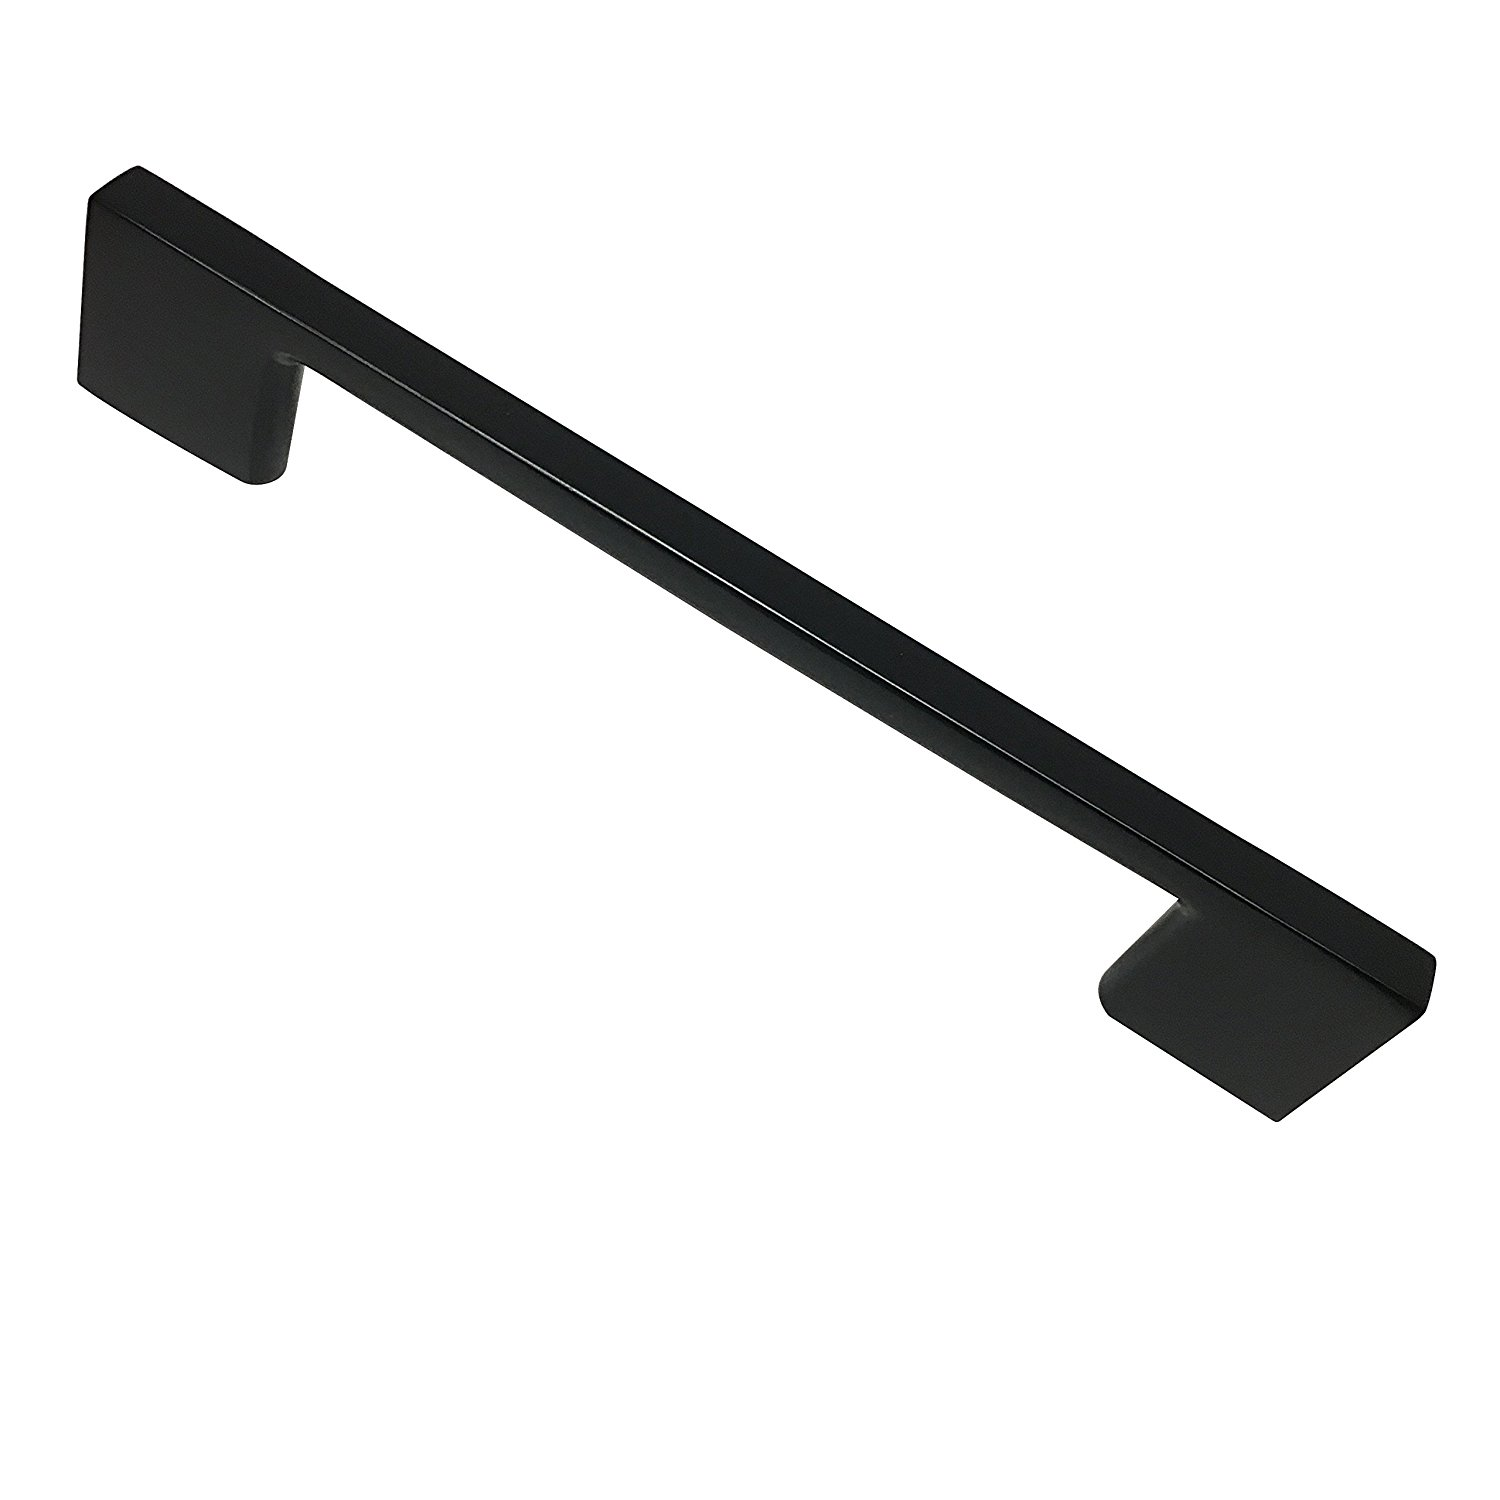 Southern Hills Satin Black Cabinet Handles - 8.75 Inch Screw Spacing - Pack of 5 - Modern Kitchen Hardware Drawer Pulls SH3229-224-BLK-5